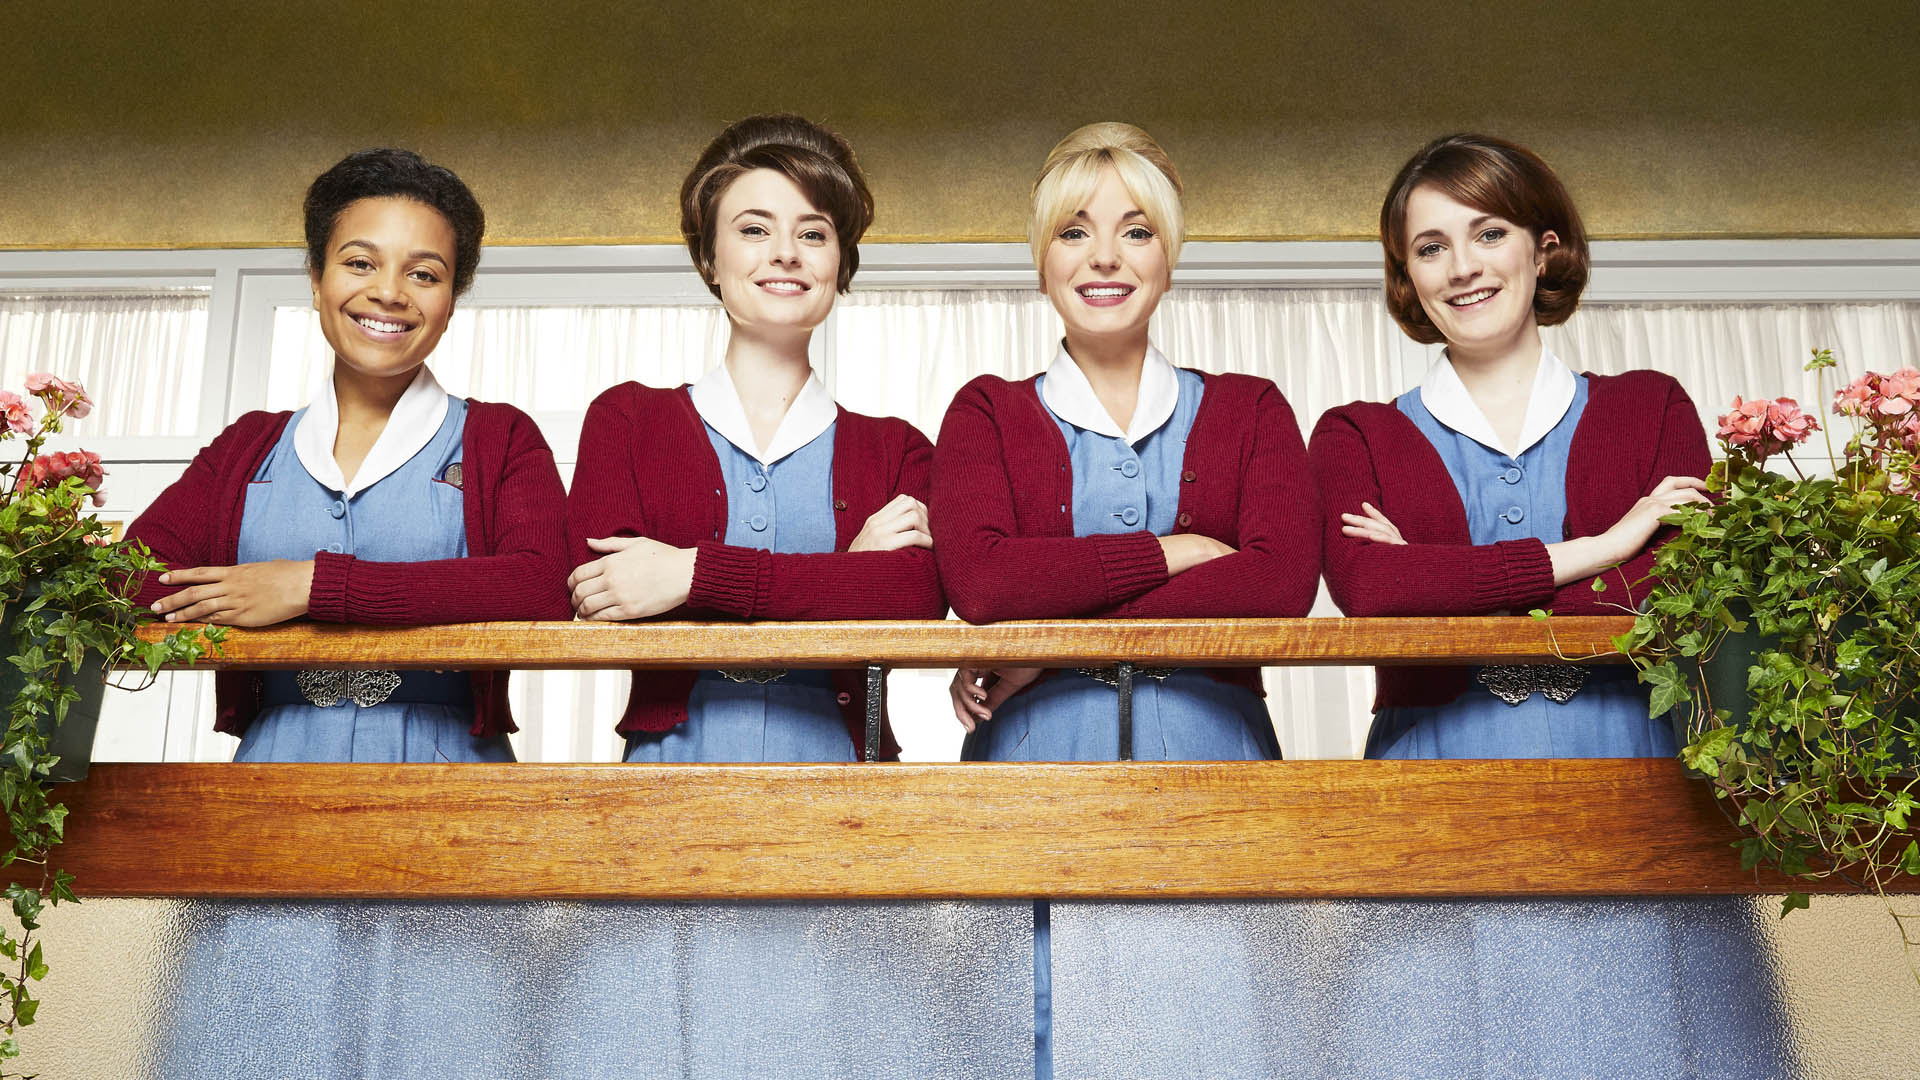 Call the Midwife Source: Amazon